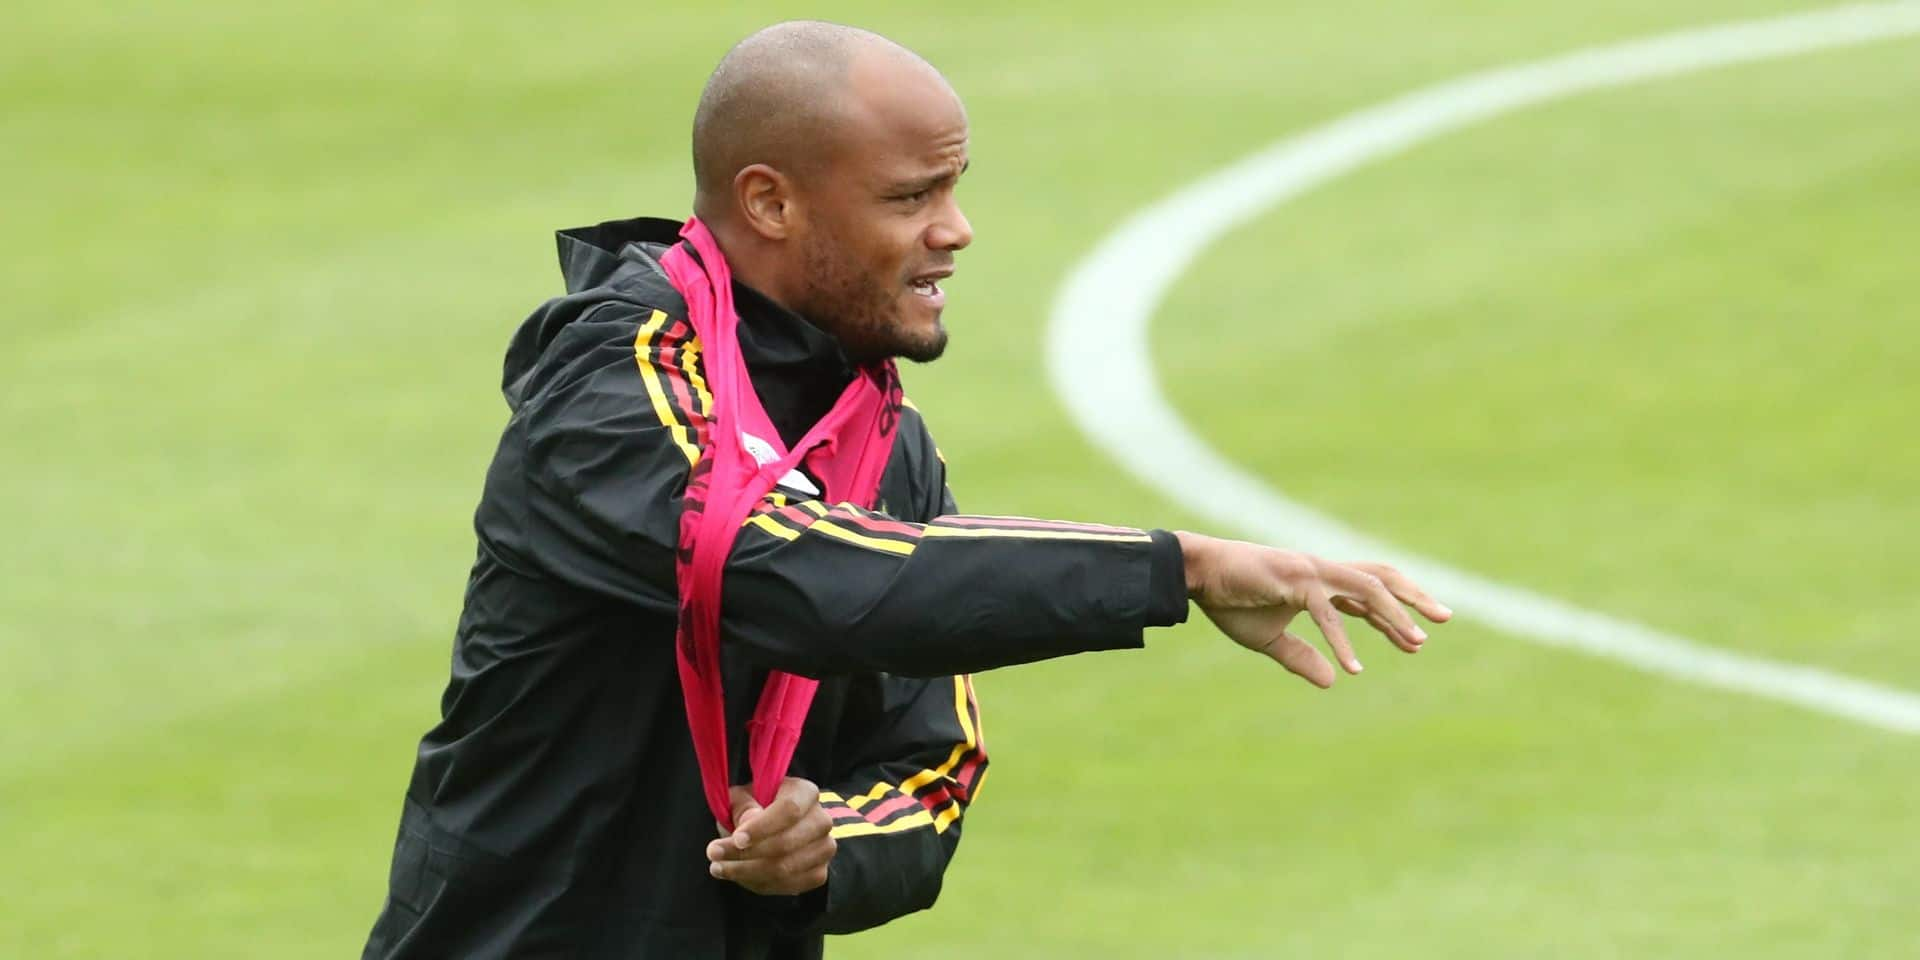 Belgium's Vincent Kompany pictured during a training session of Belgian national soccer team the Red Devils, Friday 07 June 2019 in Tubize. Tomorrow the team will meet Kazakhstan in an UEFA Euro 2020 qualification game, on Tuesday they'll play Scotland. BELGA PHOTO VIRGINIE LEFOUR